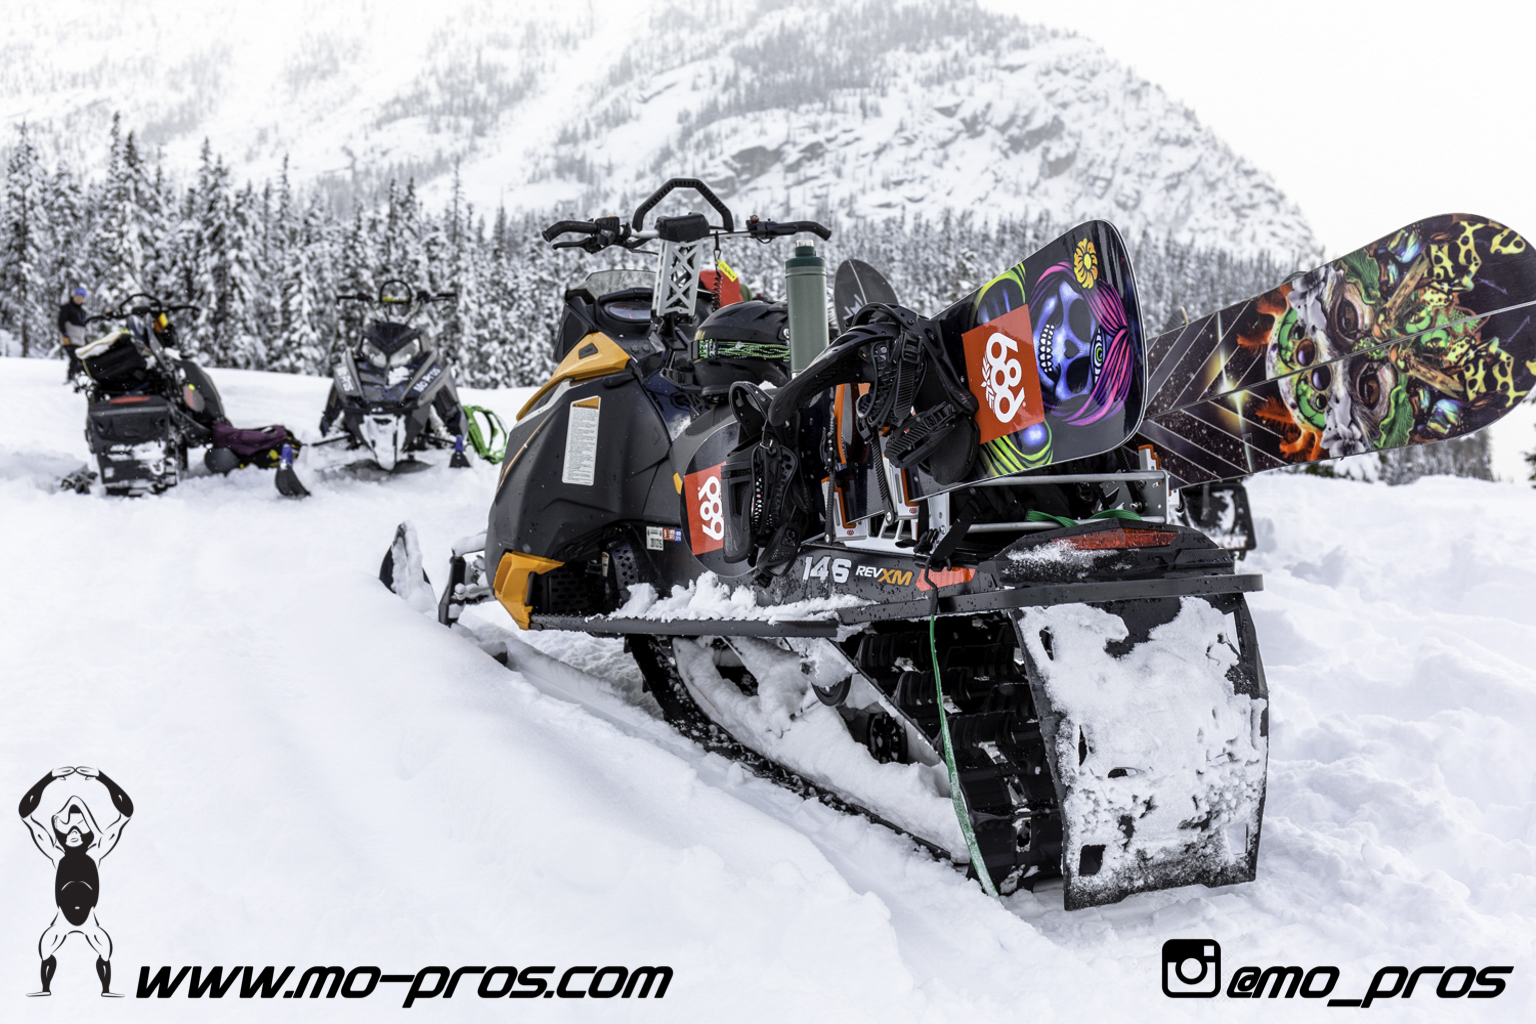 63_Backcountry _Backcountry United_CFR rack_Cheetah Factory Racing_gas Rack_Gear_Gun Rack_LinQ Snowboard Ski_Snowboard rack_snowboard_Snowboarding_snowmobile bag_Snowmobile_timbersled bag_Timbersled .jpg